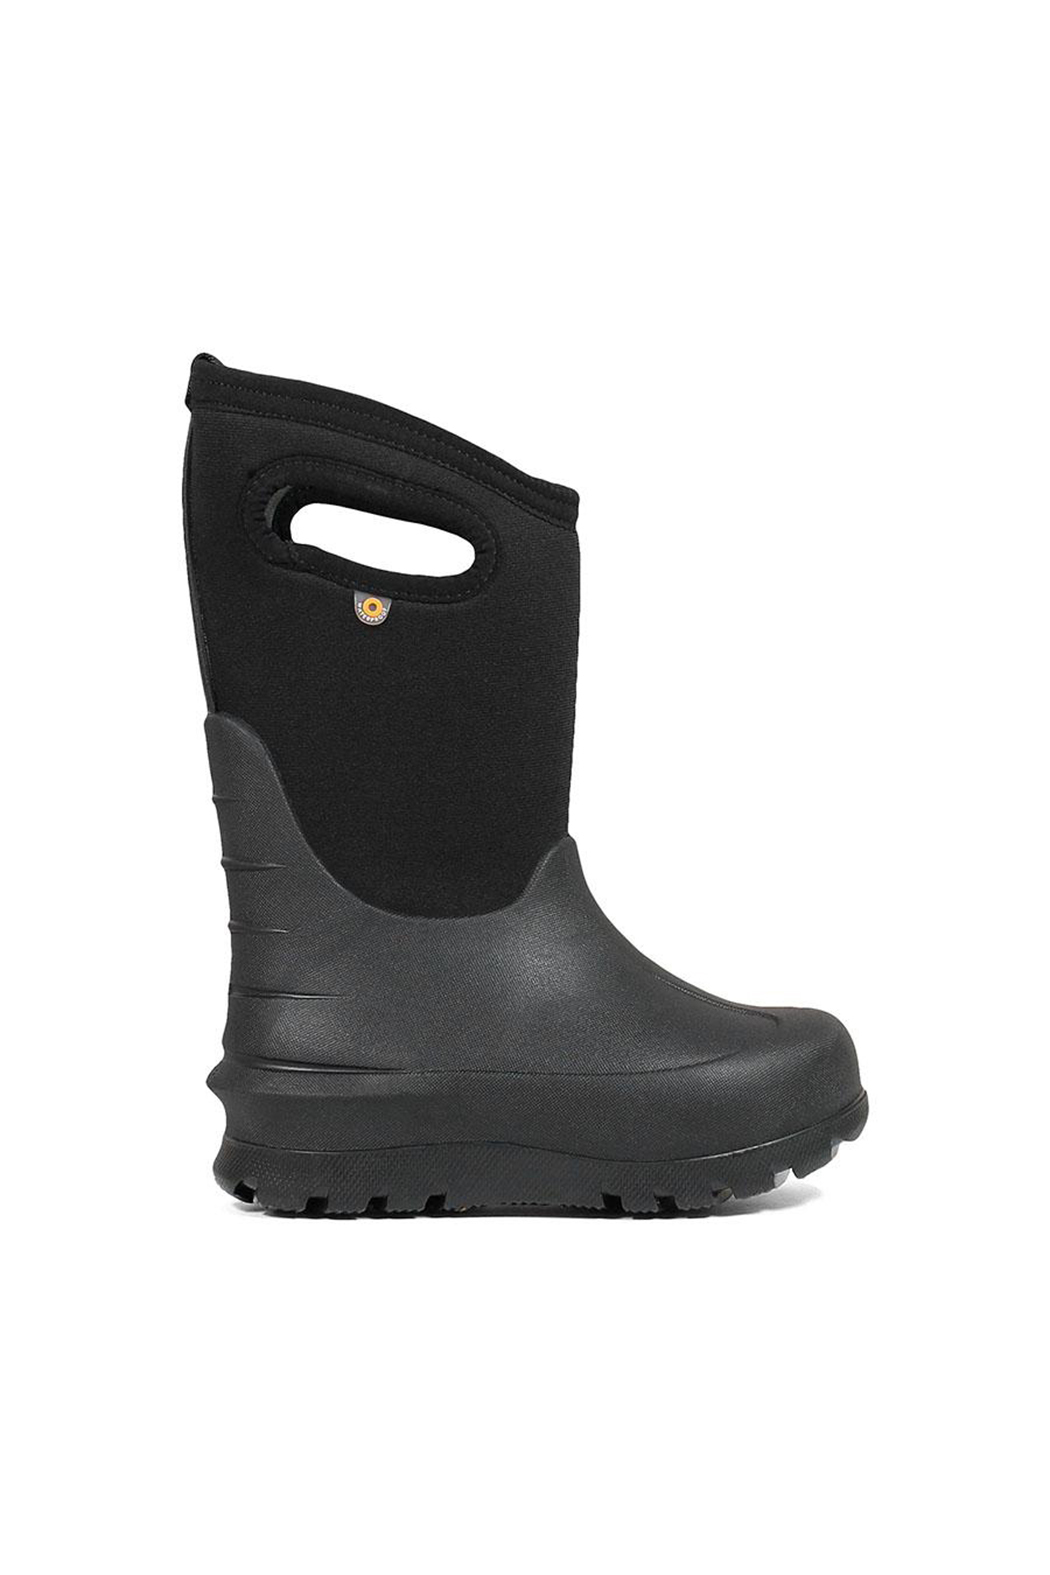 BOGS Neo-Classic Solid Kids Insulated Boots - Main Image